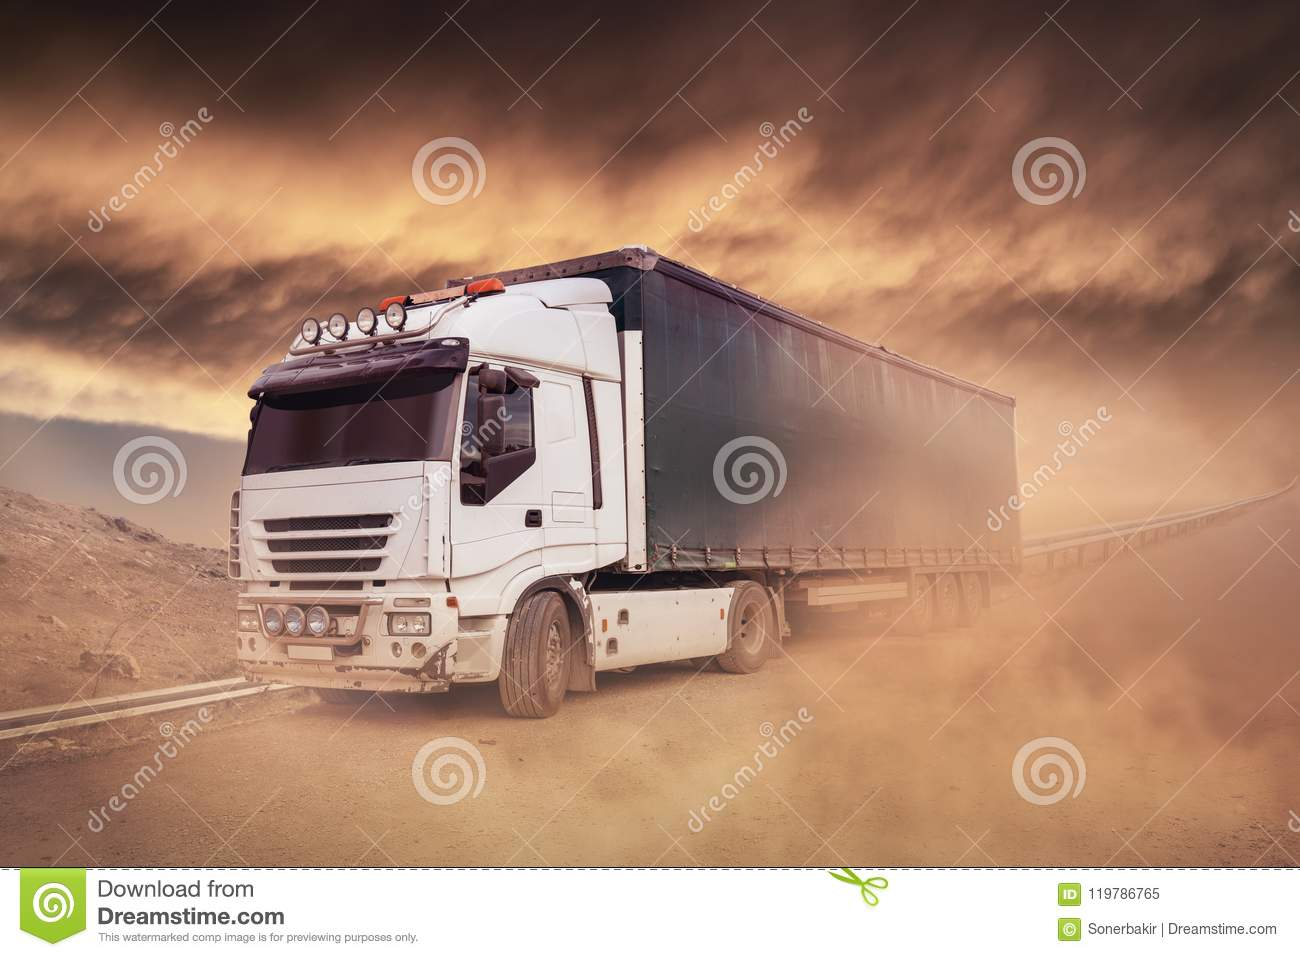 Shipping Truck on the highway- Trucking, Freight Transport